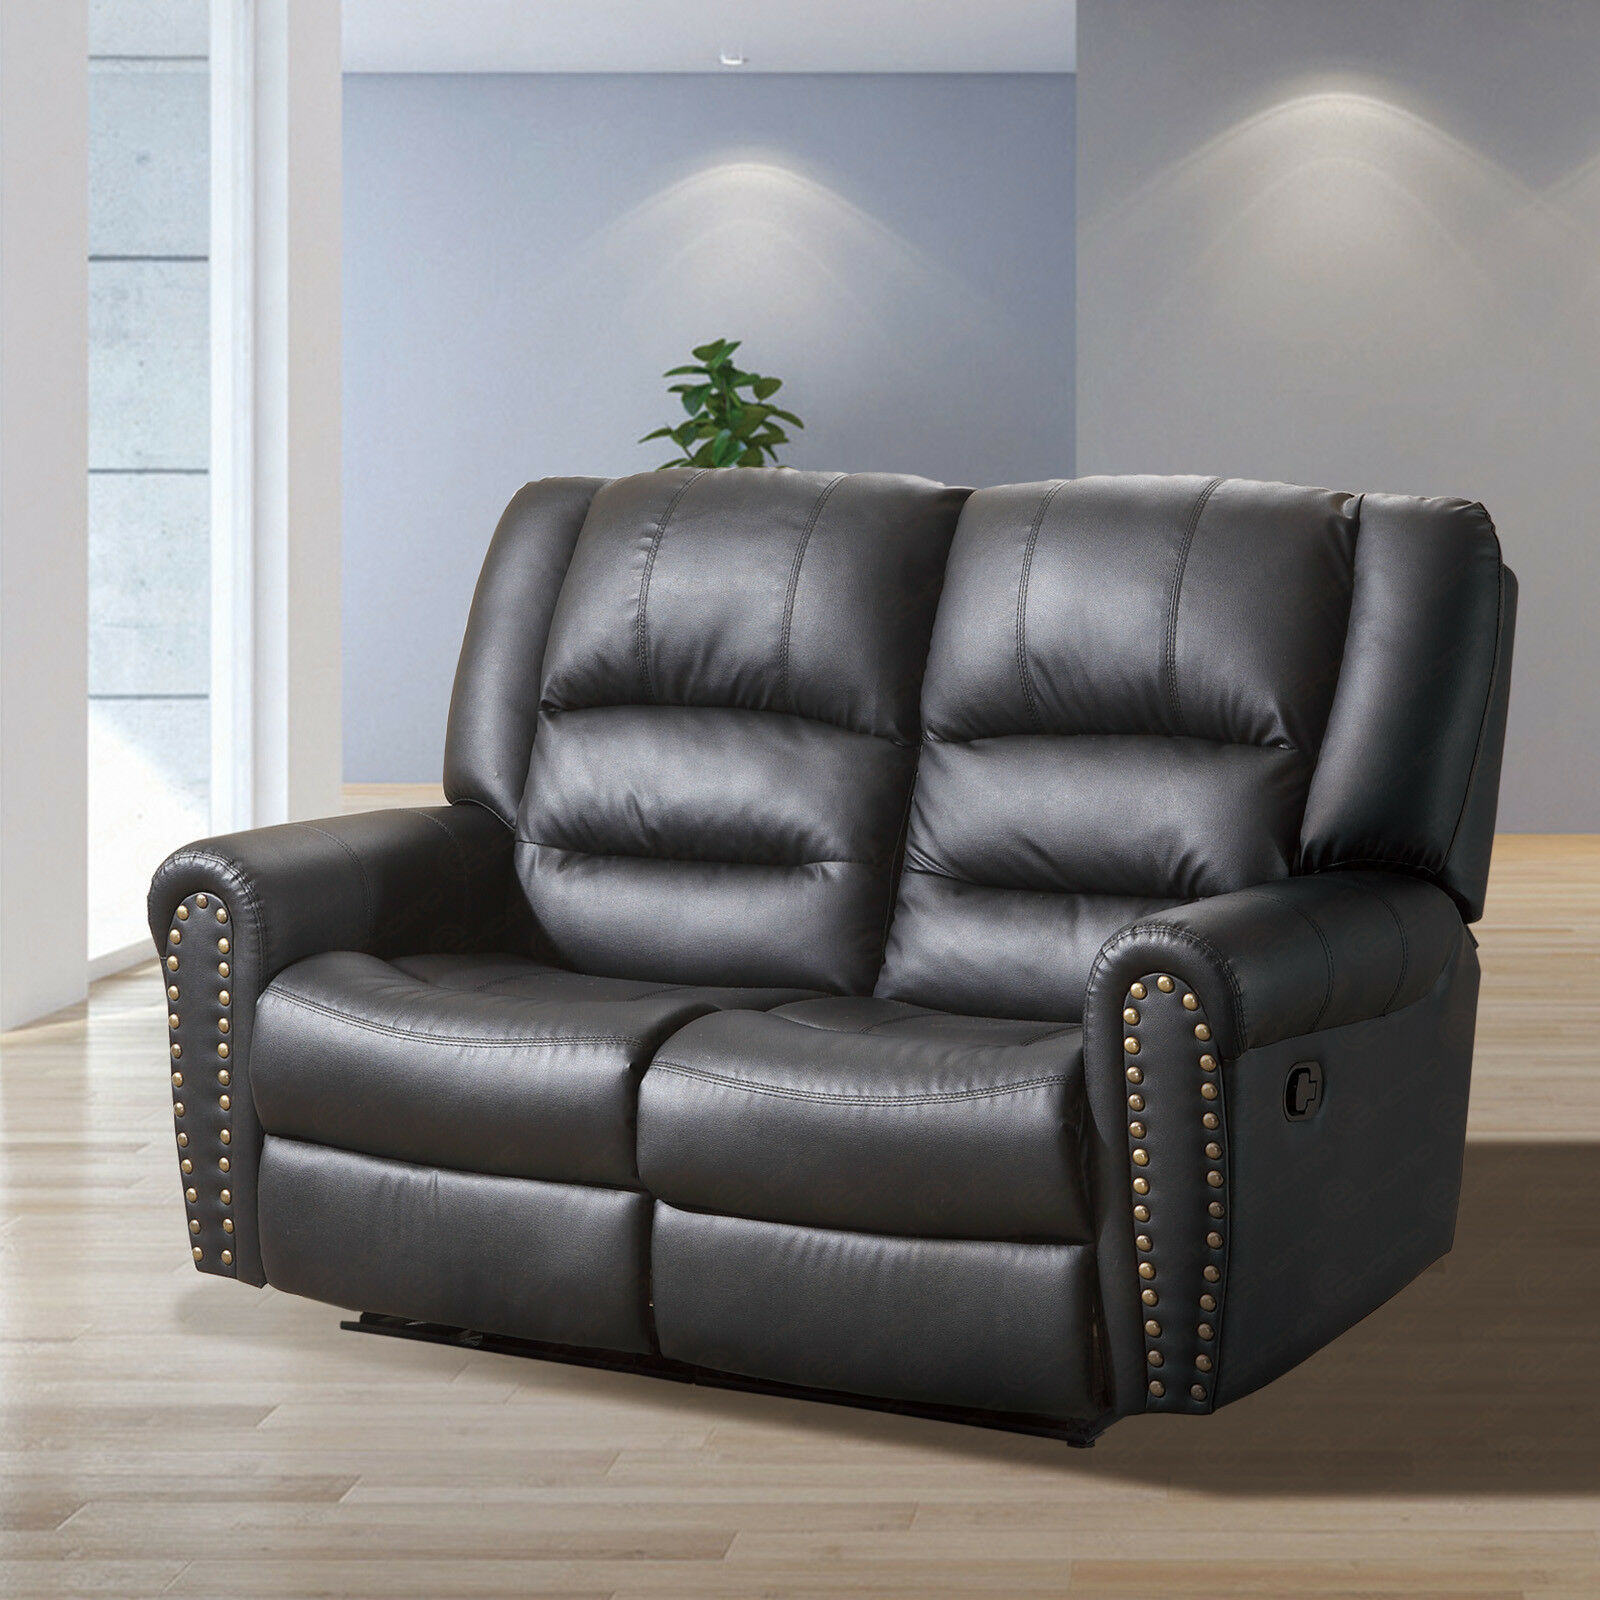 Picture 1 of 7 ... : 2 seater chaise sofa - Sectionals, Sofas & Couches